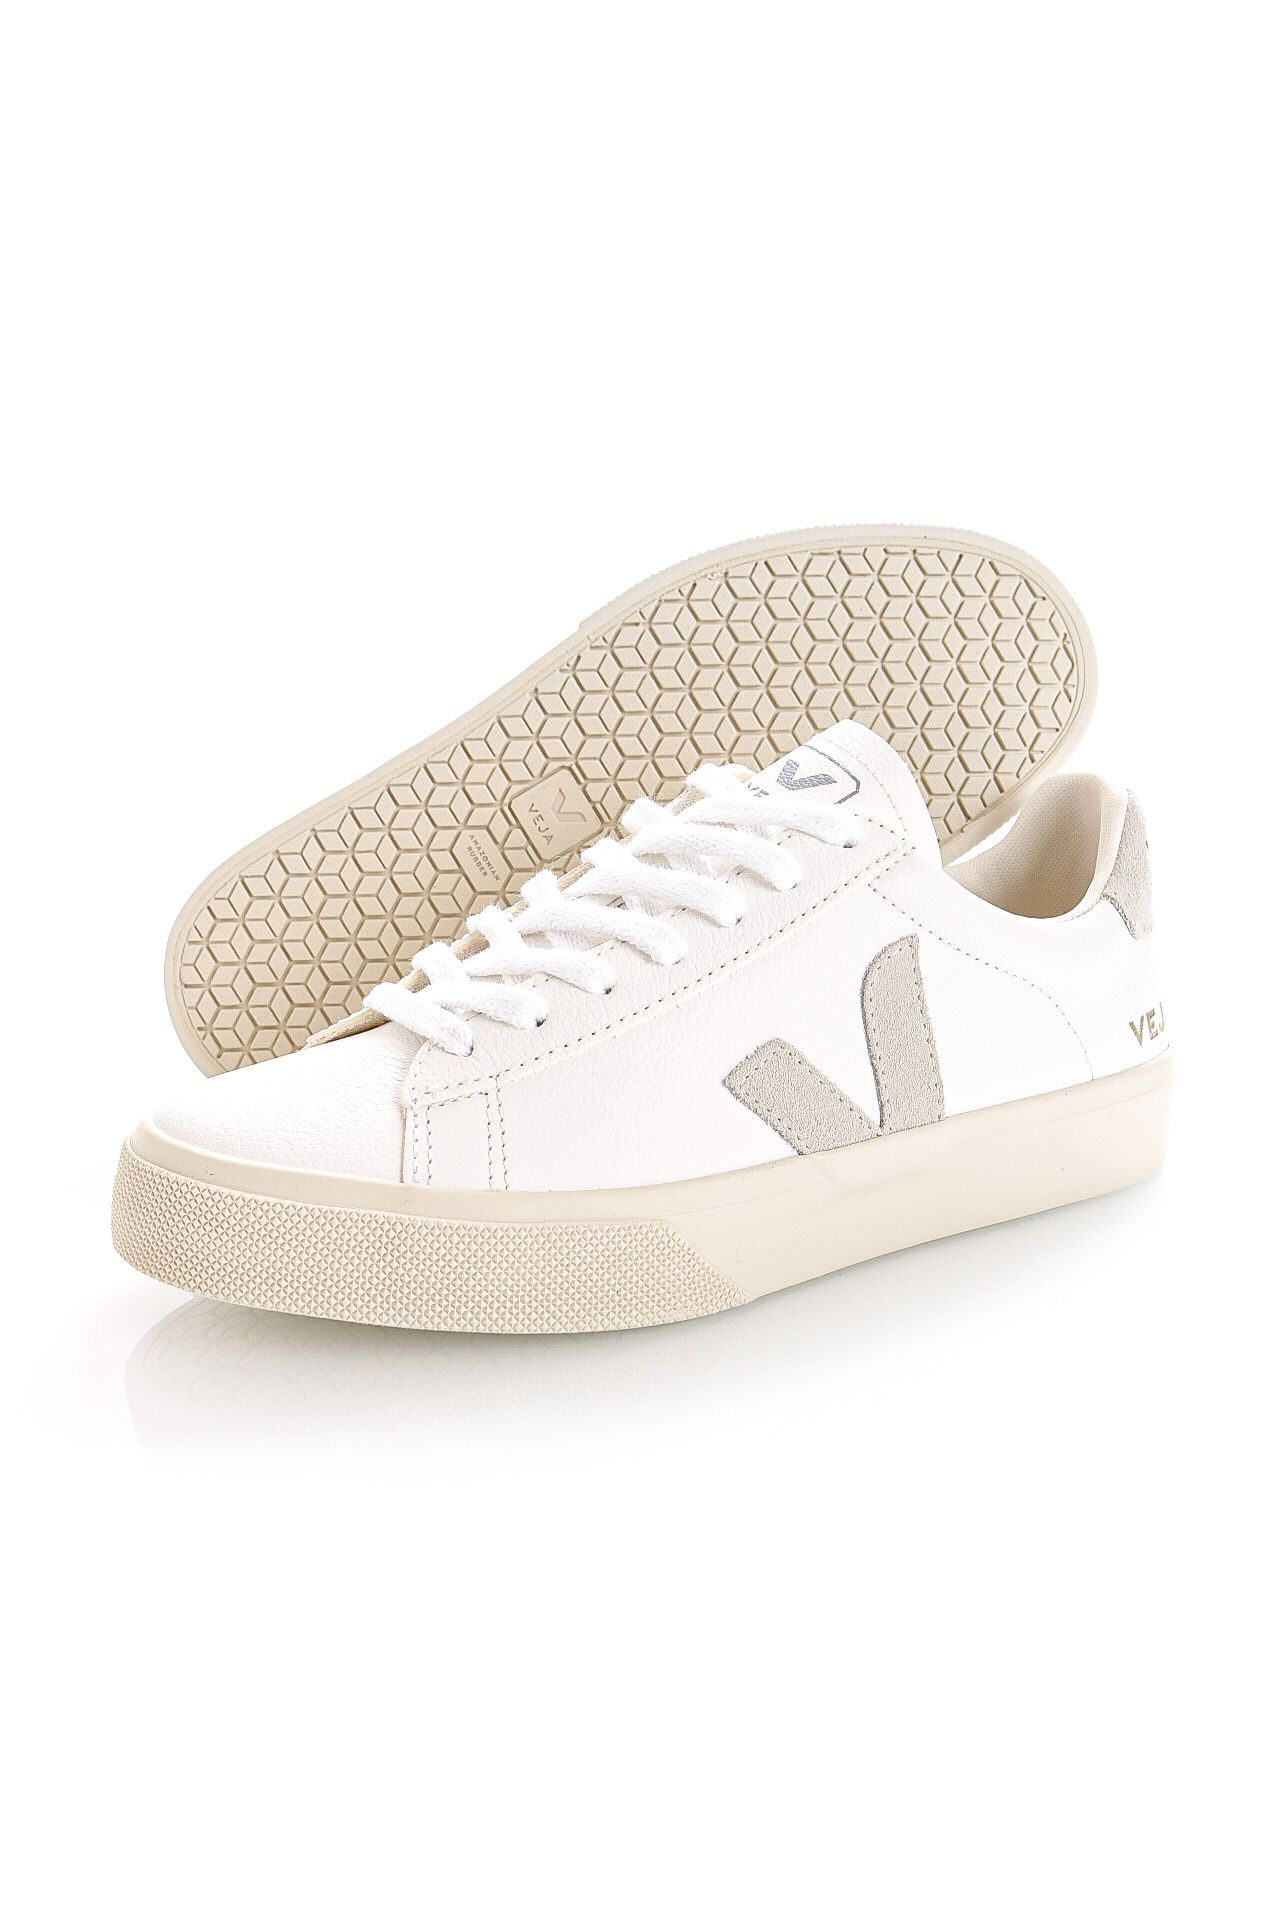 Afbeelding van Veja Sneakers CAMPO CHROMEFREE EXTRA-WHITE NATURAL SUEDE CP0502429A